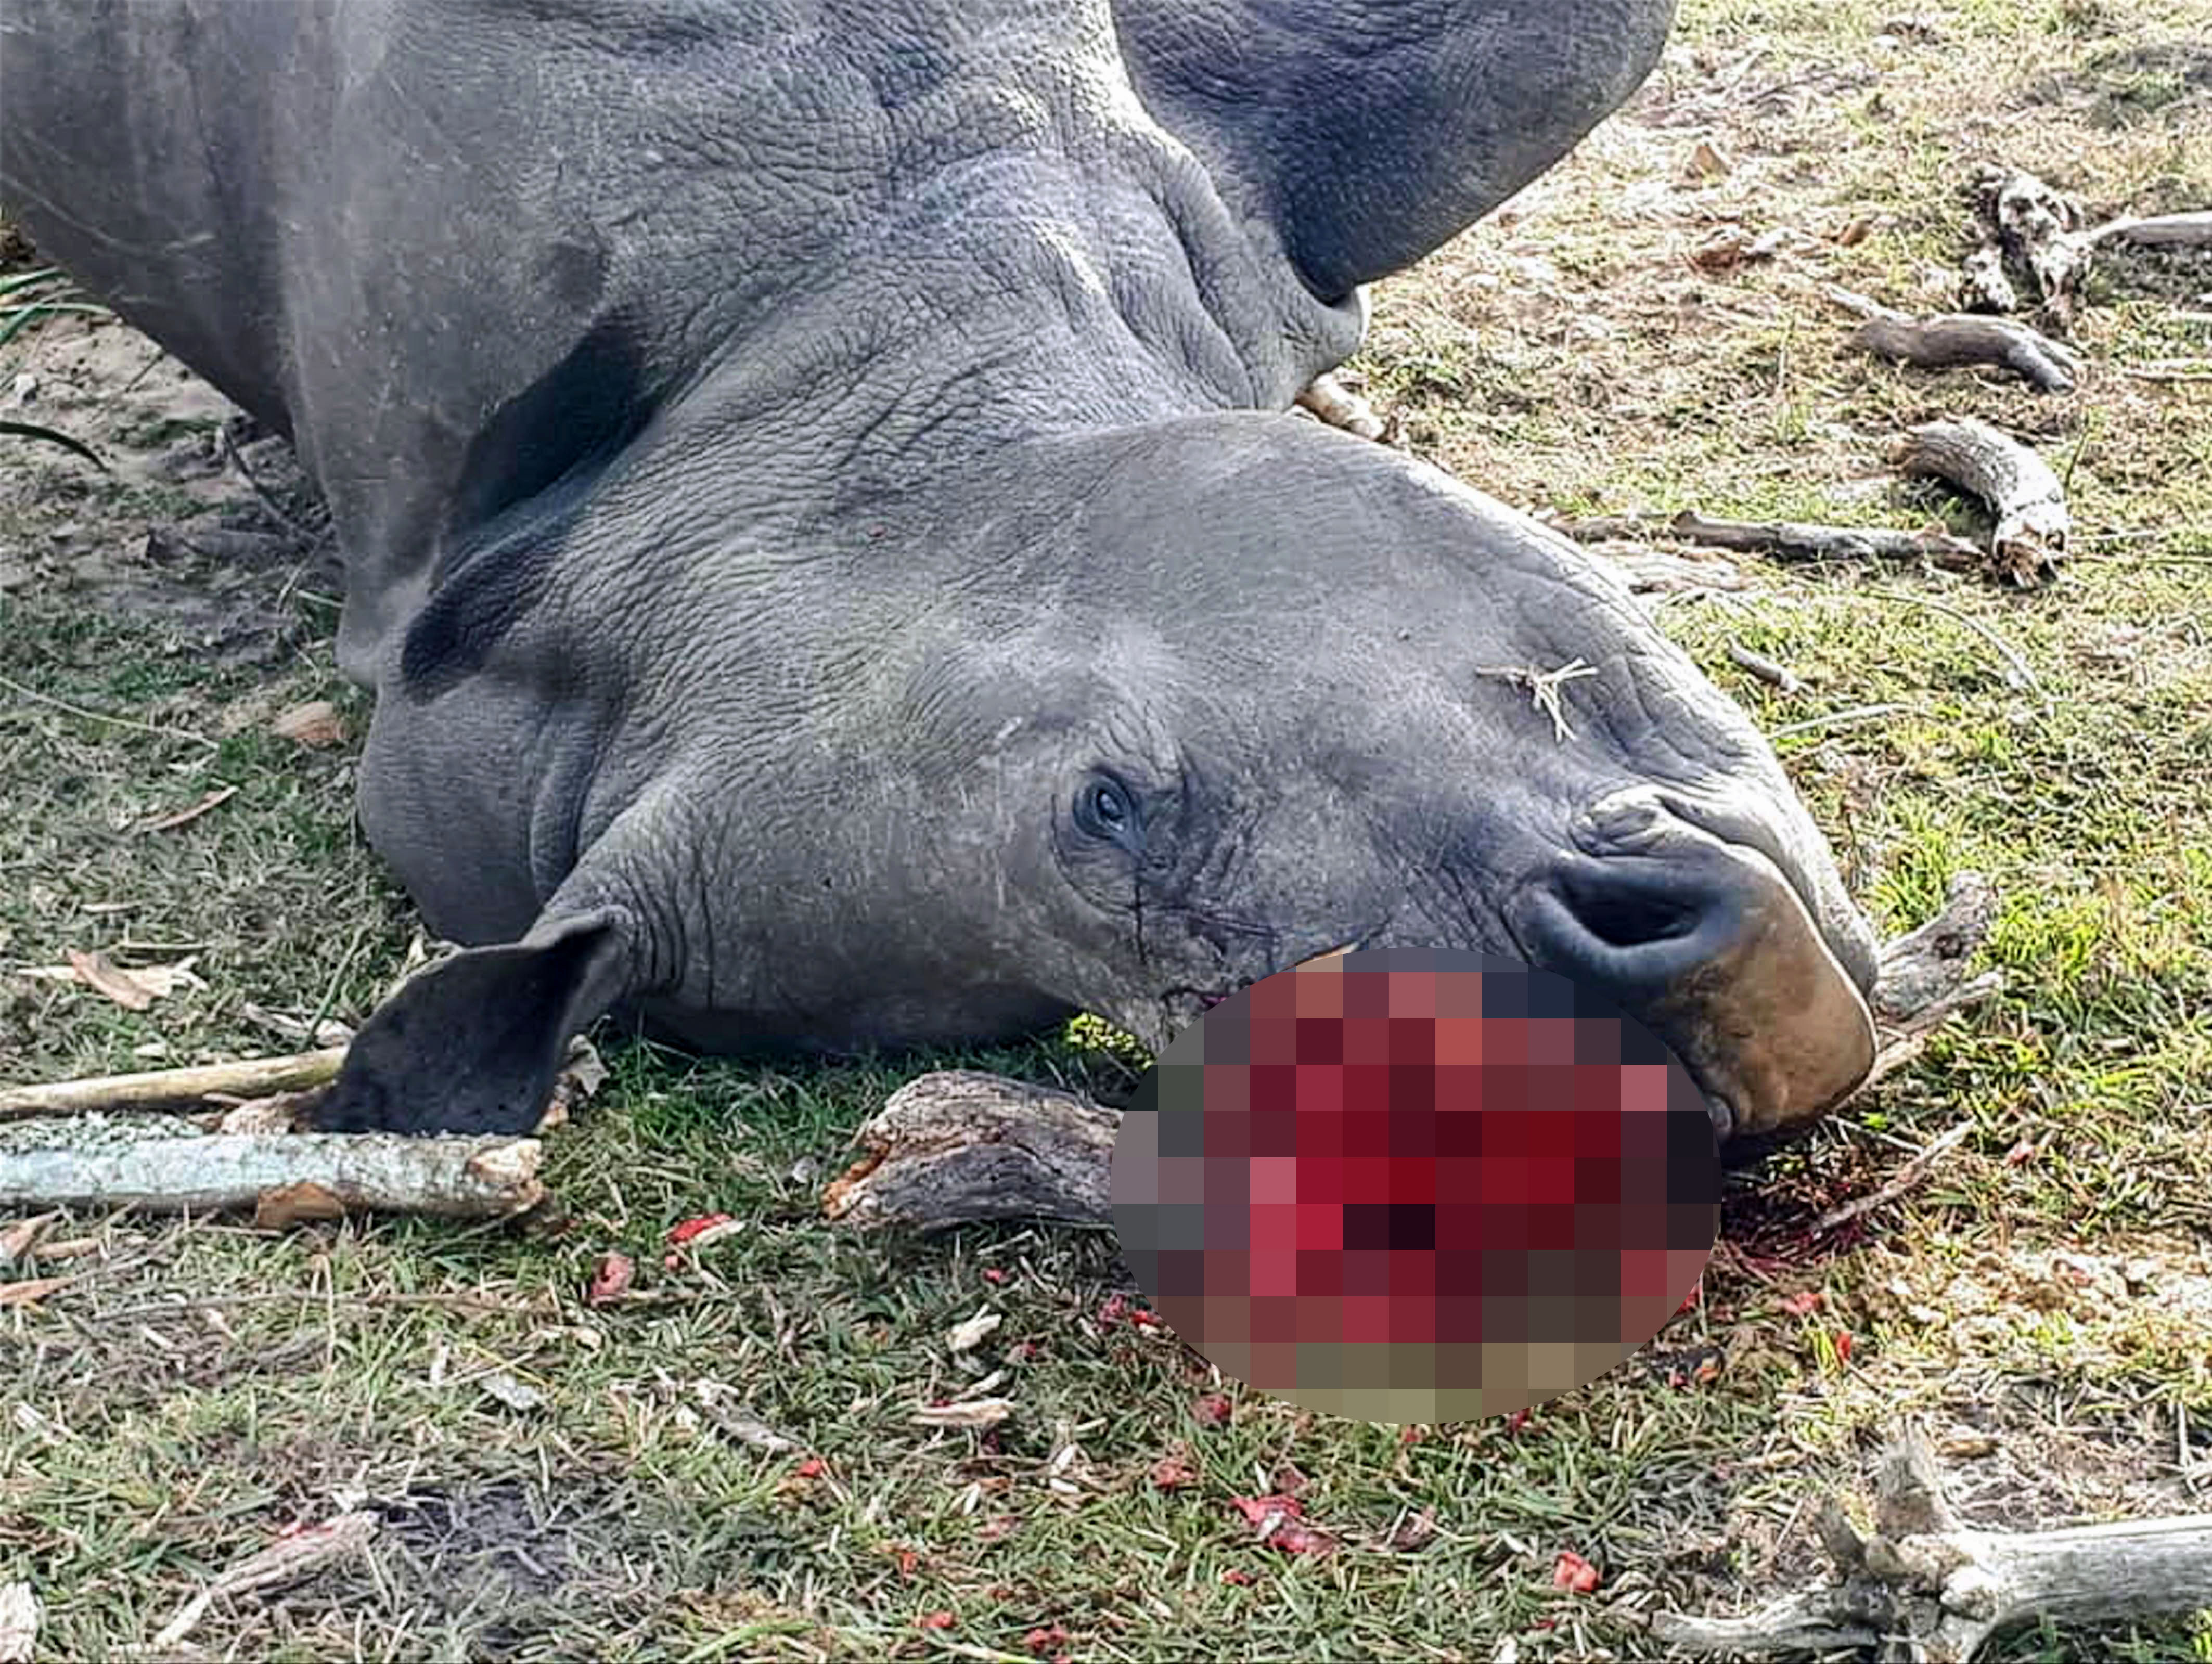 Bella, a white rhino, killed for her horn